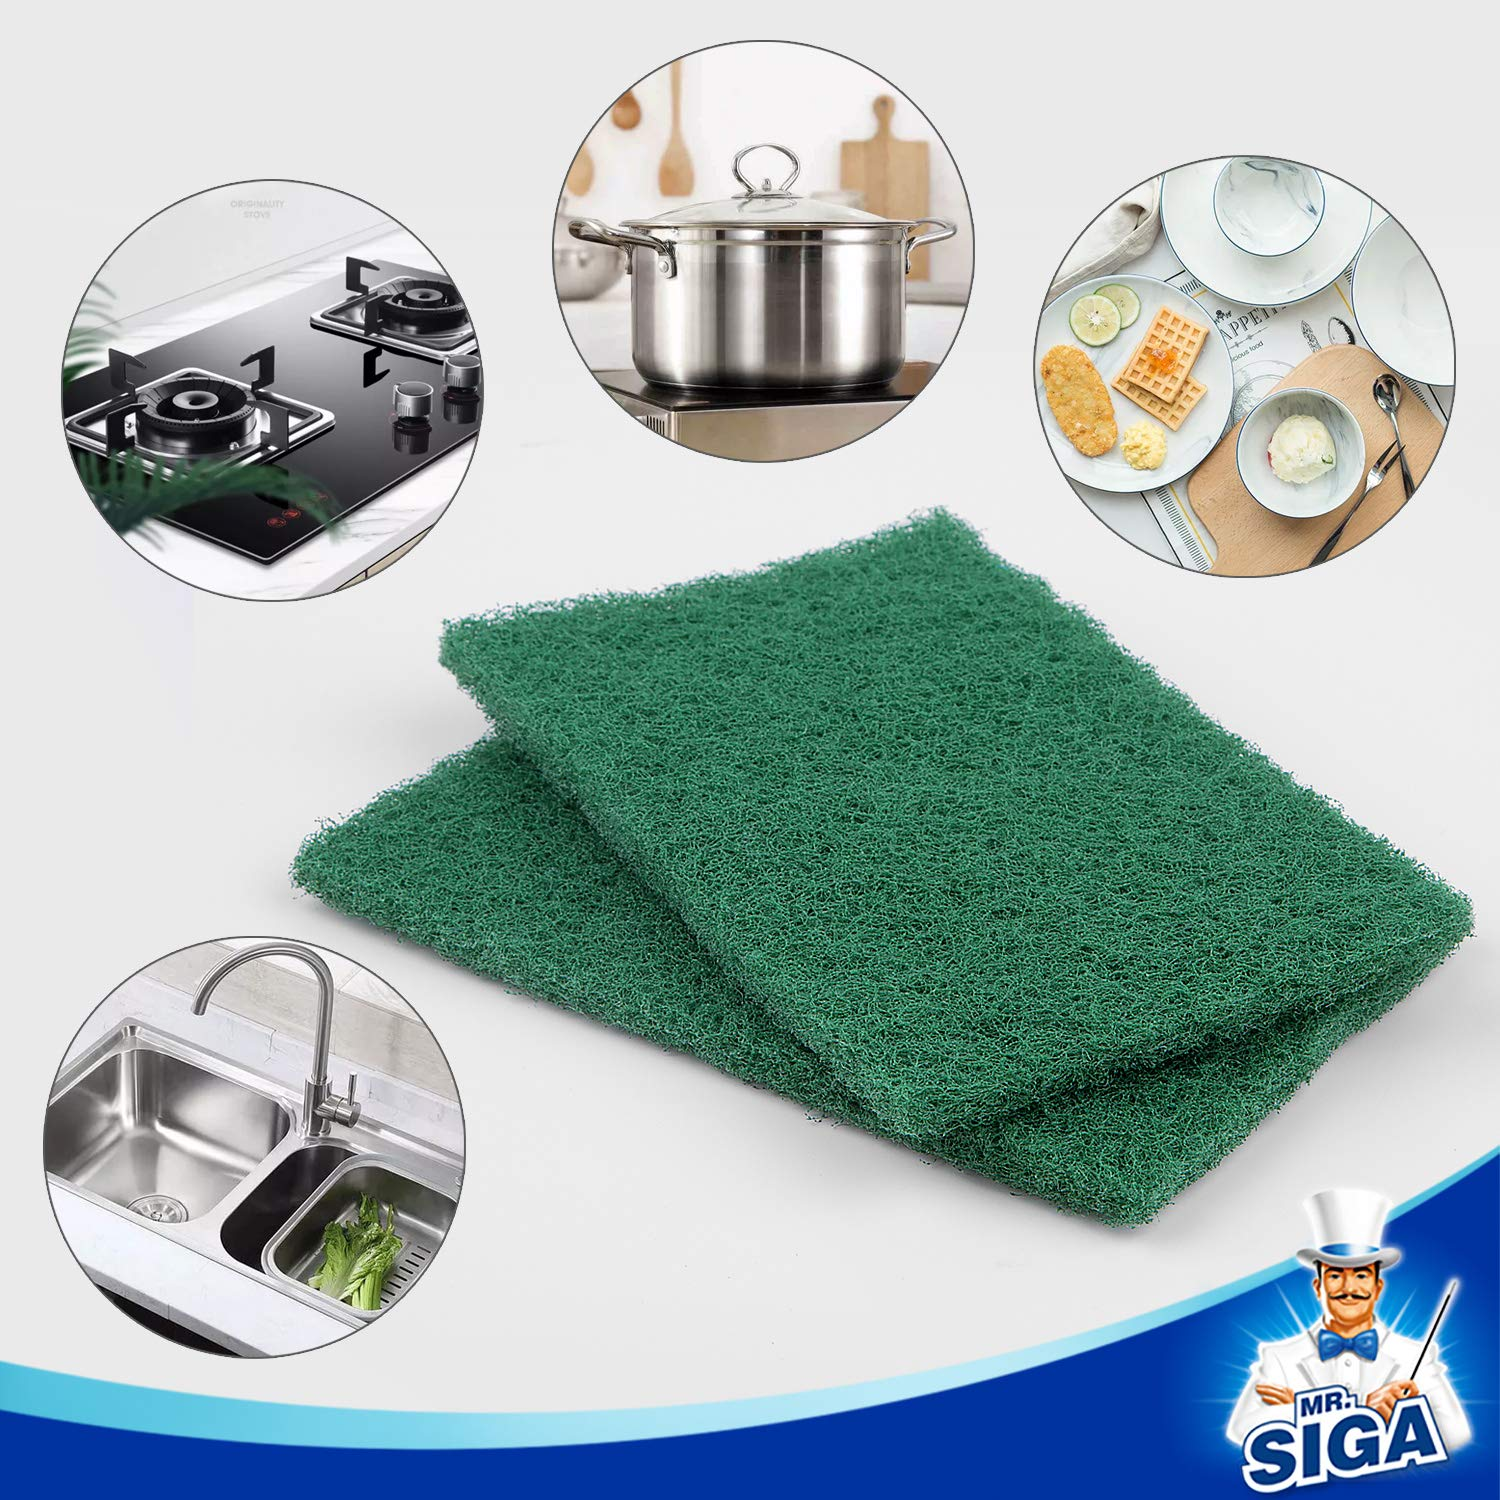 MR.SIGA Heavy Duty Scouring Pads, Household Scrubber for Kitchen, Sink, Dish, 24-Pack, 3.9 x 5.9 inch (10 x 15 cm), Green by MR.SIGA (Image #3)